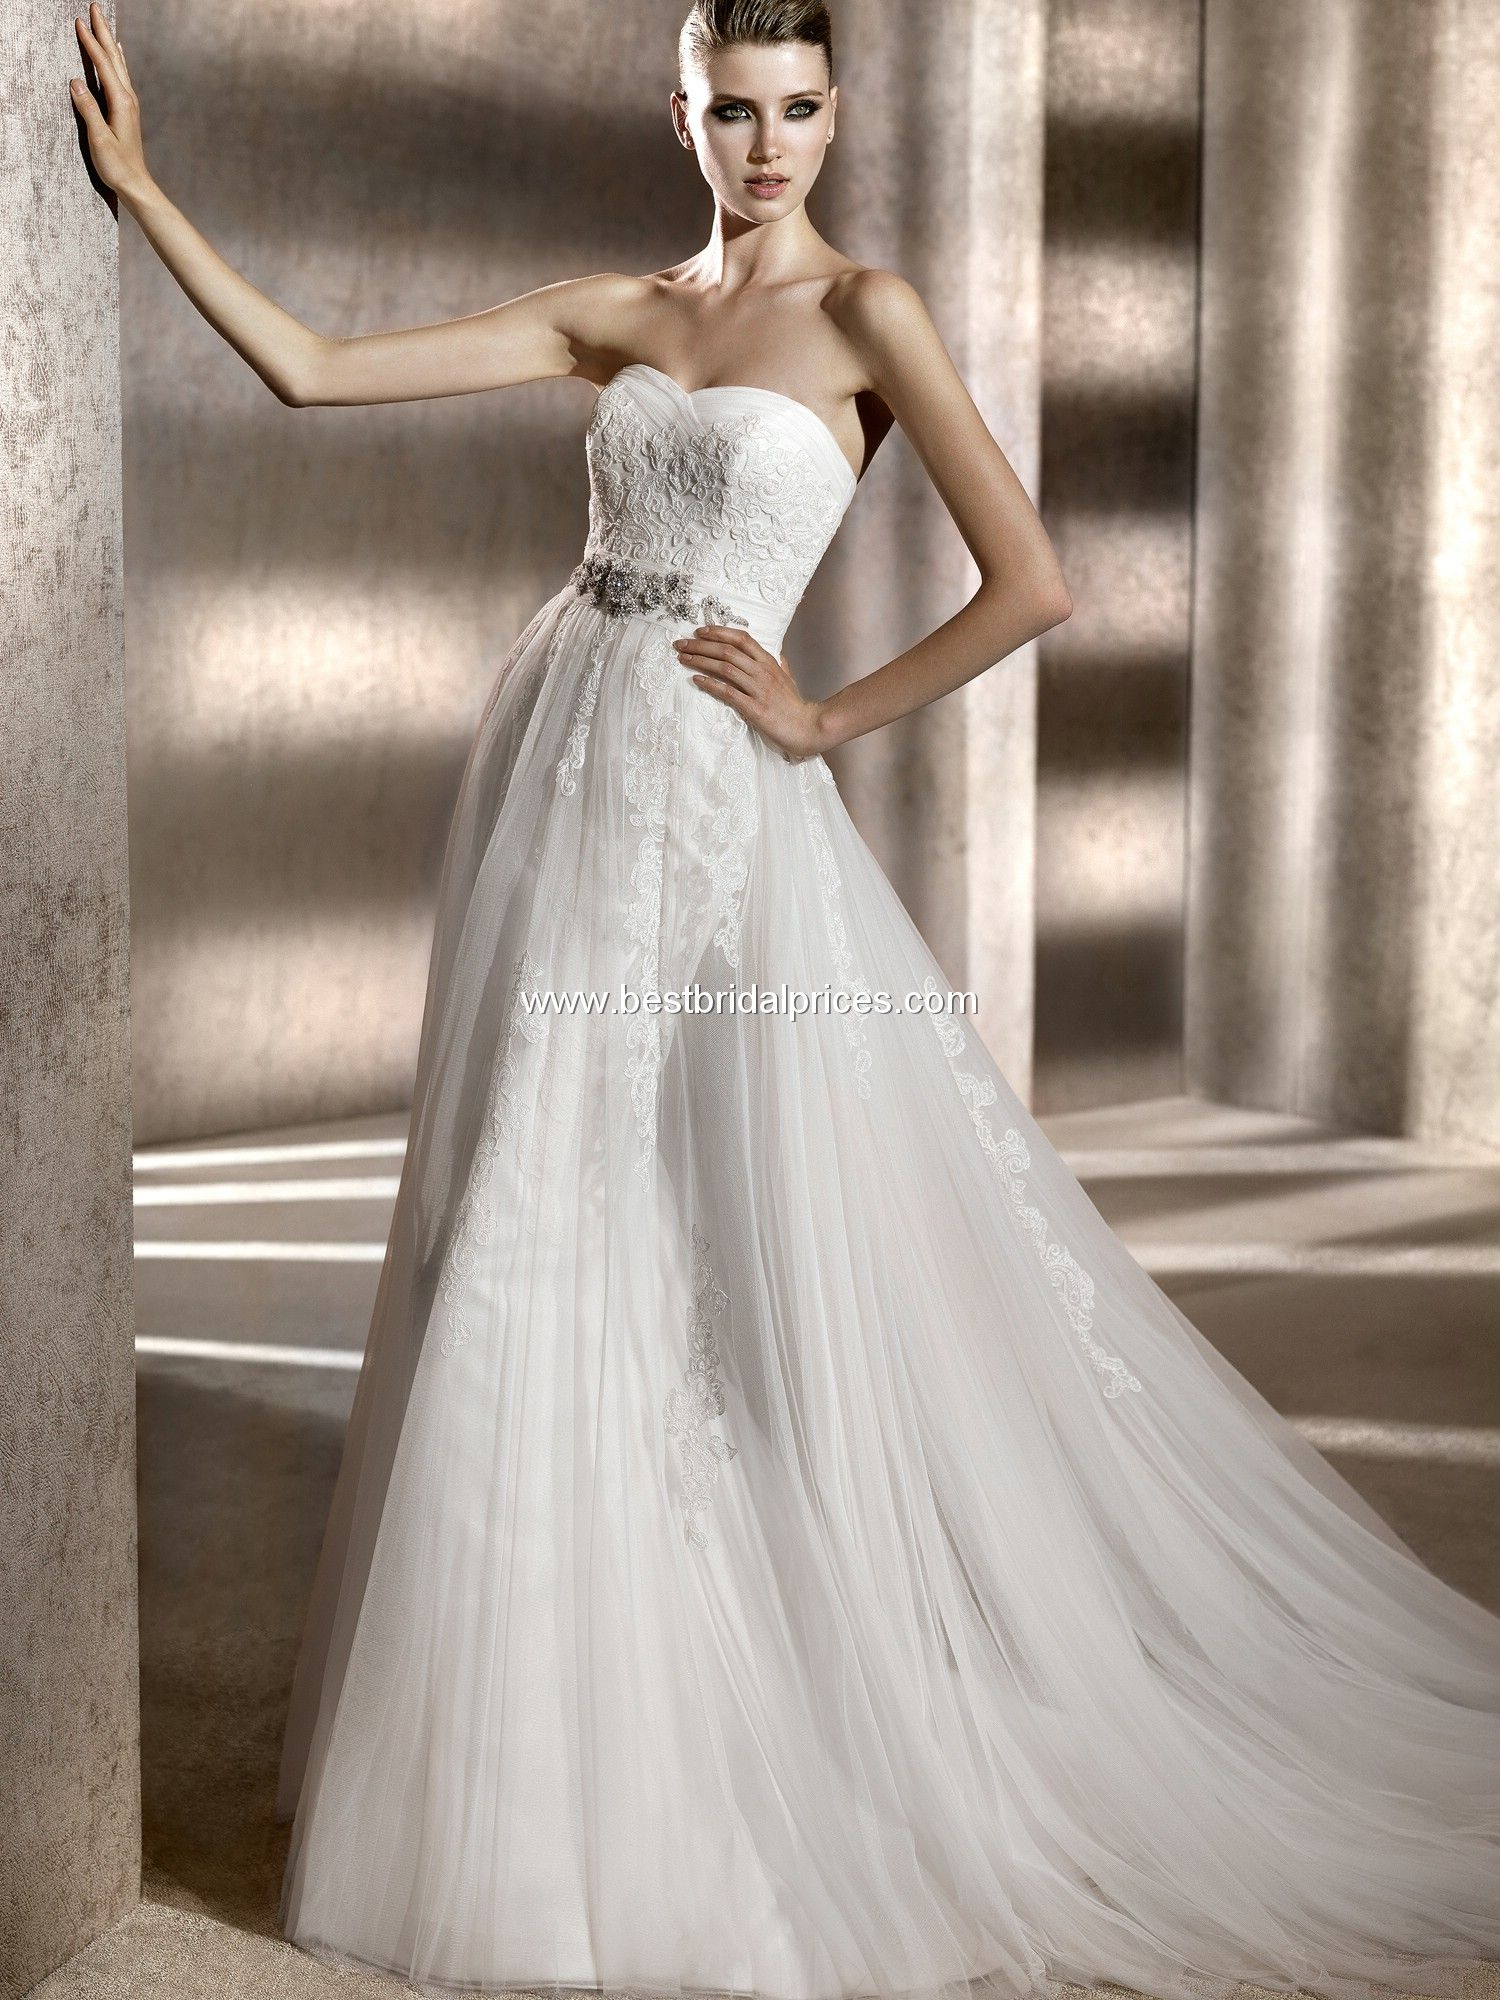 OMG! I can not wait to get married, so many choices of dresses, what ...